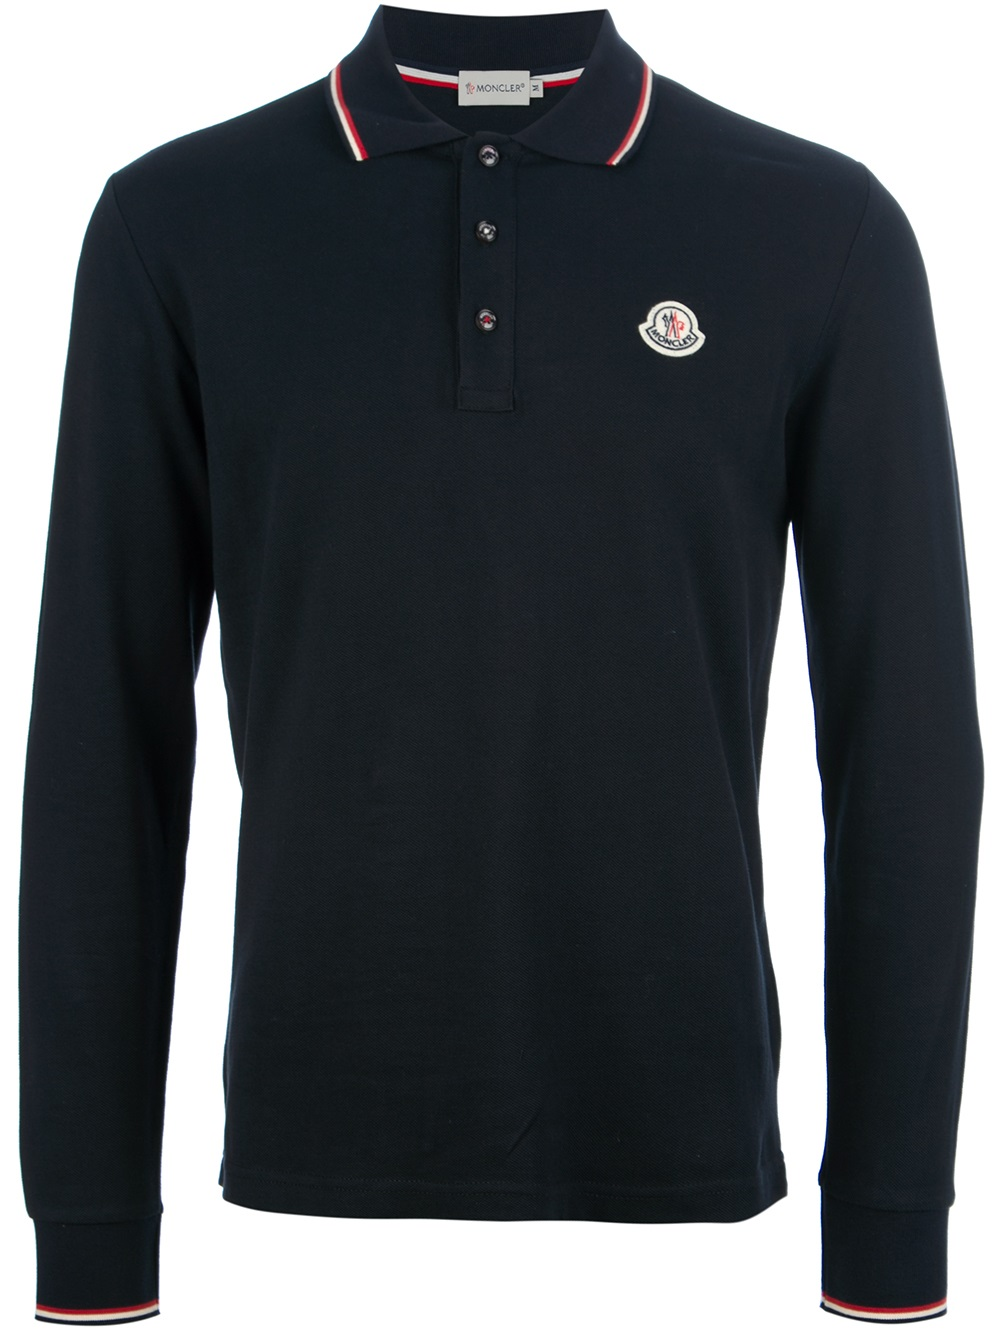 Moncler long sleeved polo shirt in black for men lyst for Polo shirt and jeans